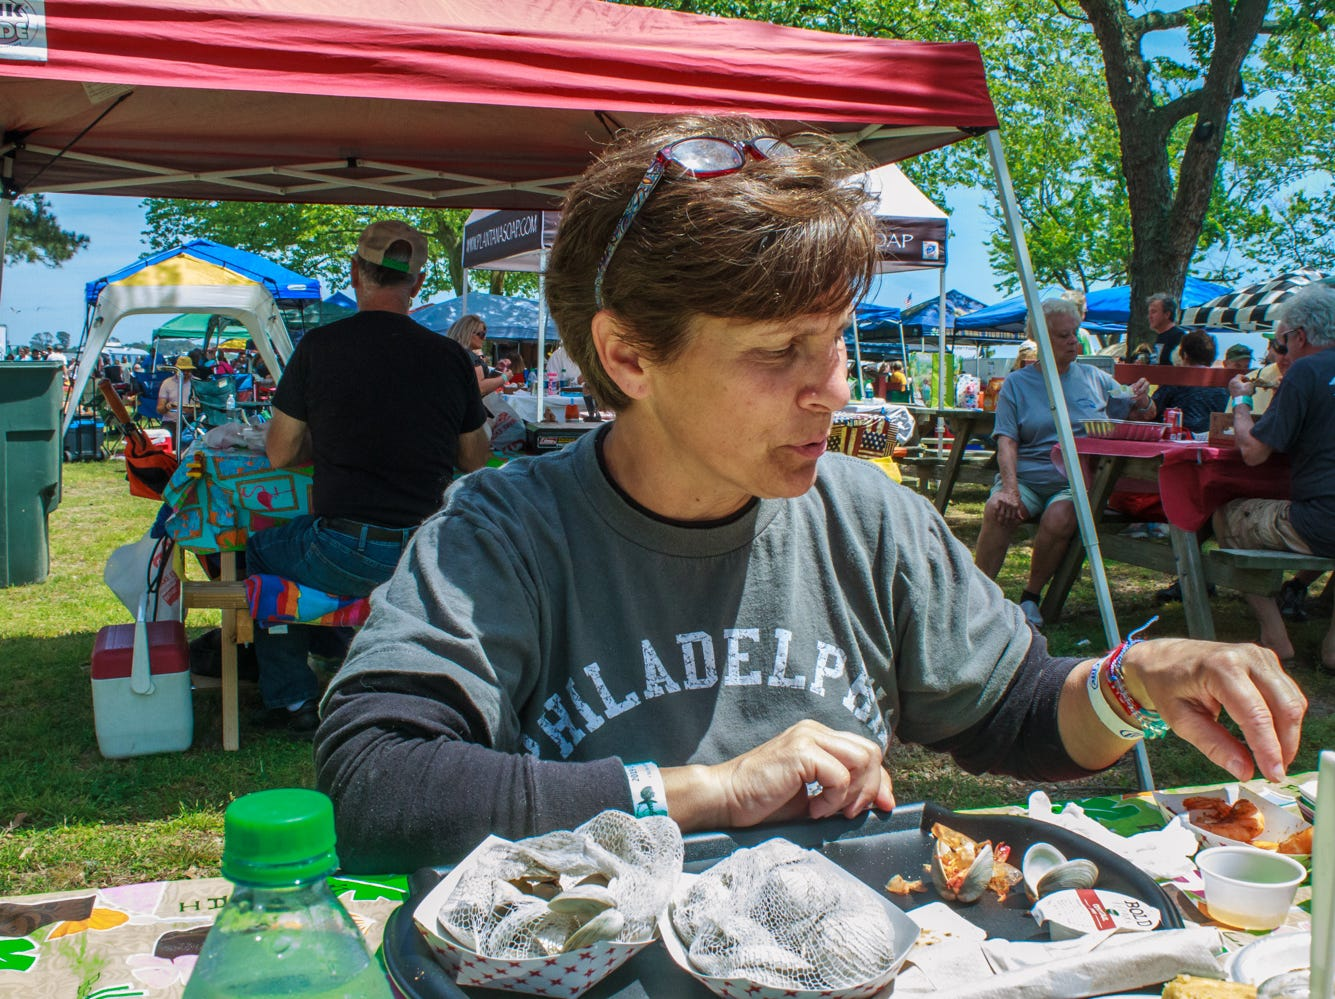 Carolyn Czarnecki of Conshohocken, Pa. gets ready to enjoy steamed shrimp on Saturday, May 4, 2019 at the Chincoteague Seafood Festival in Chincoteague, VA.